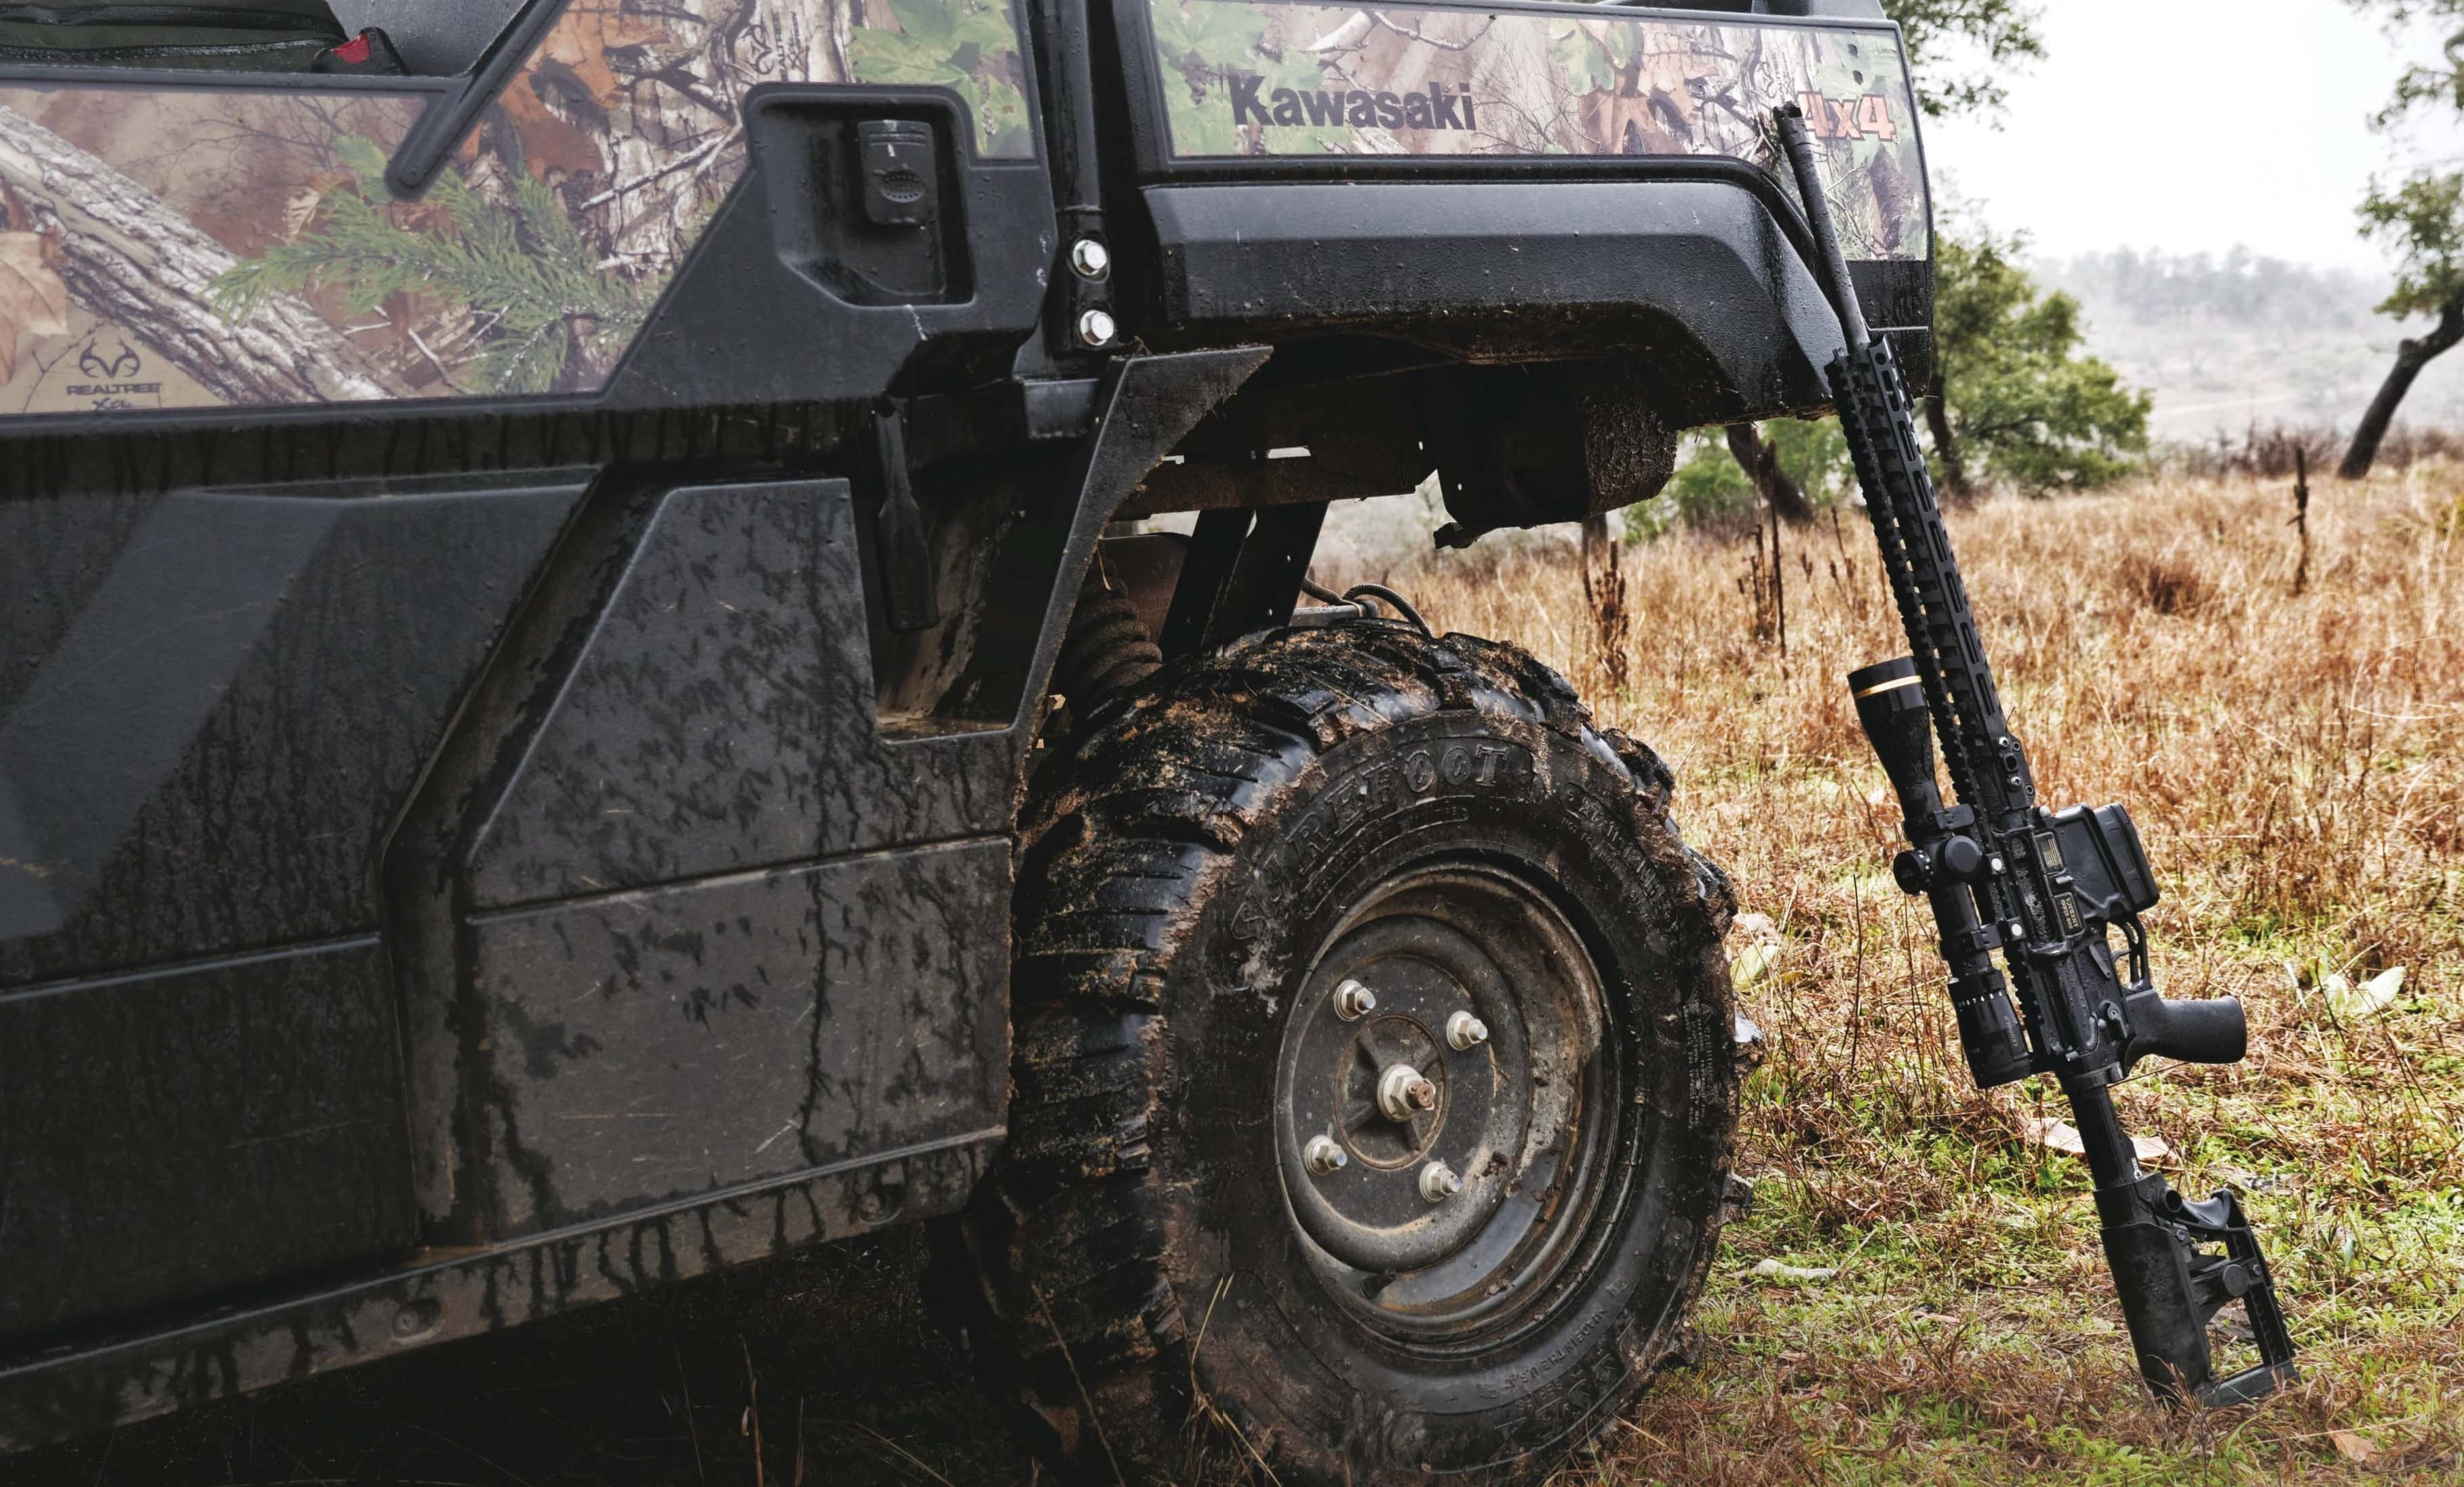 HUNTING WITH AMERICA'S RIFLE